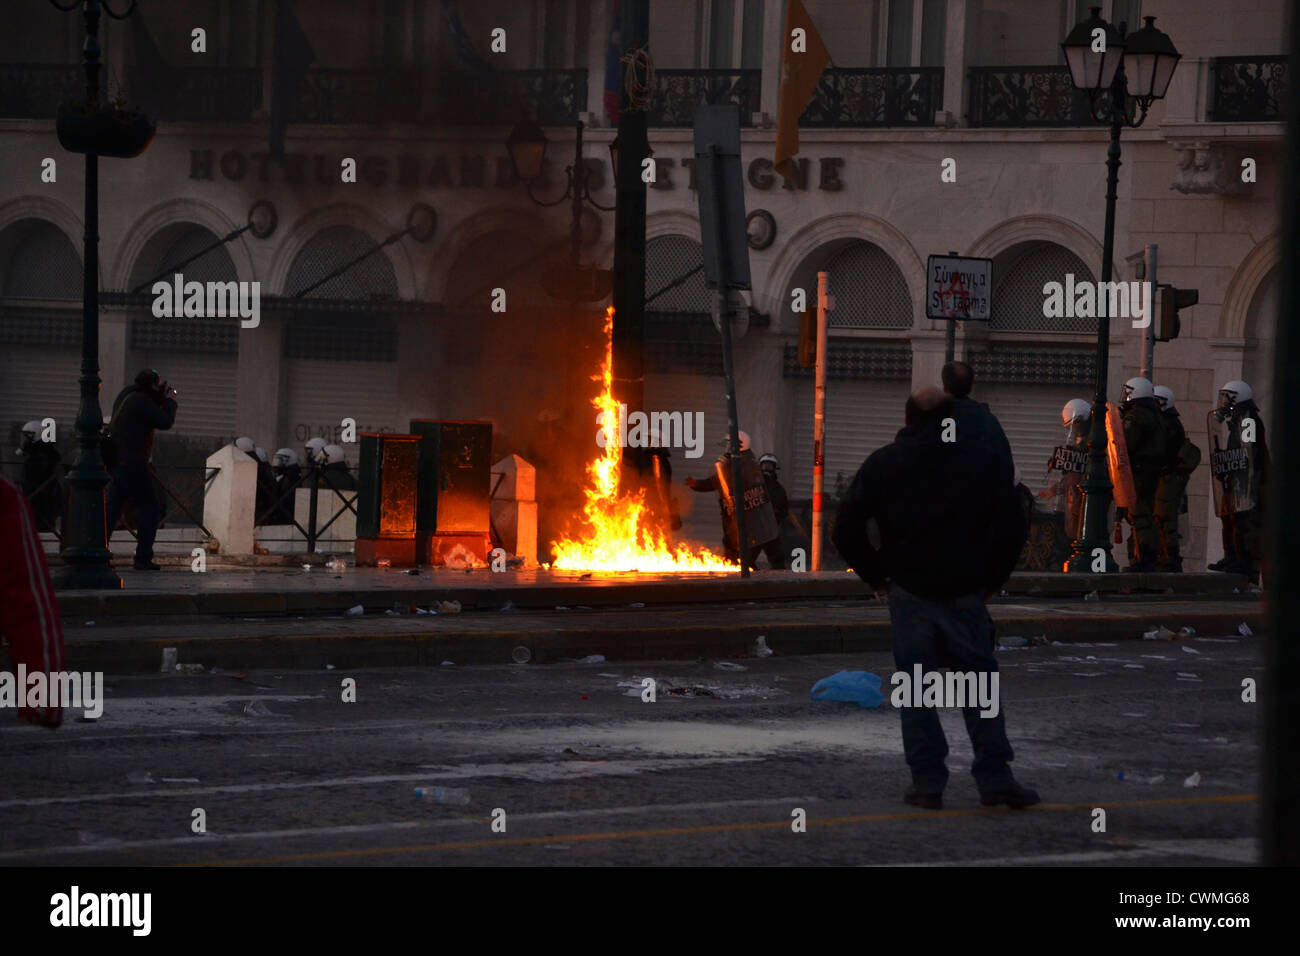 Petrol bombs burn next to riot police during an anti-austerity demonstration in Syntagma Square. Athens, Greece. - Stock Image